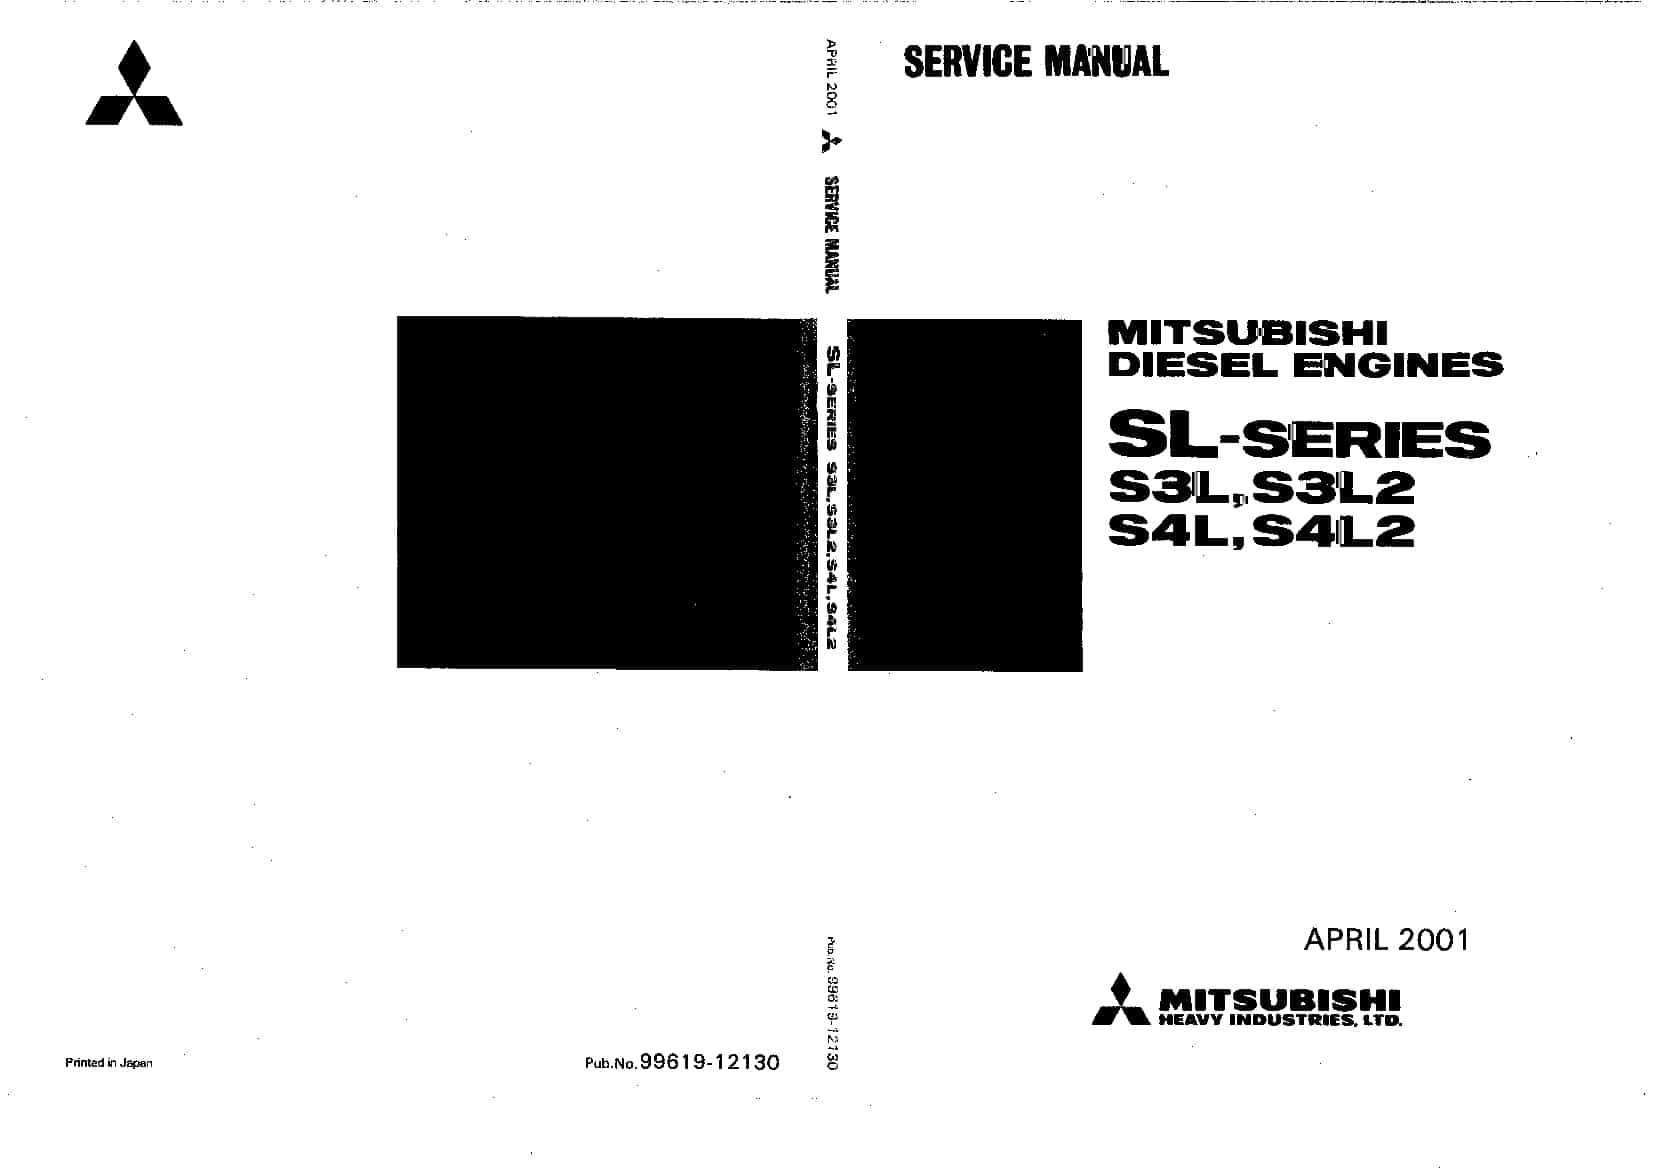 MITSUBISHI SL-SERIES Workshop Repair Service Manual PDF